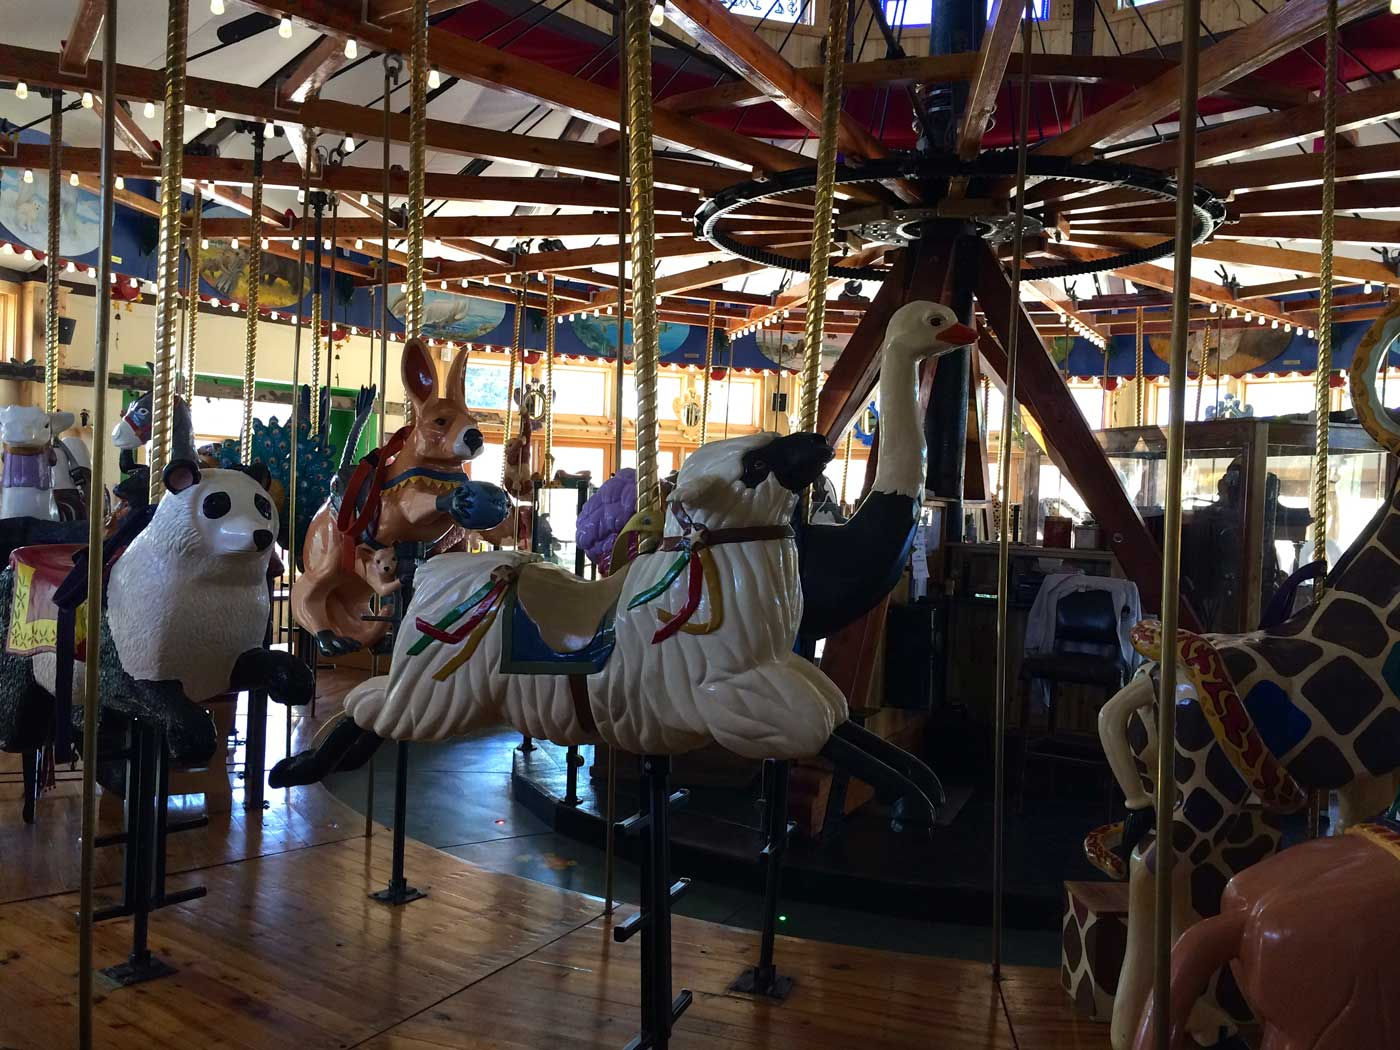 Art therapy in action!! The above photo is the life work of a veteran who hand carved,painted, and restored these carousel animals in Nederland, Colorado. You can read about this amazing story  here .